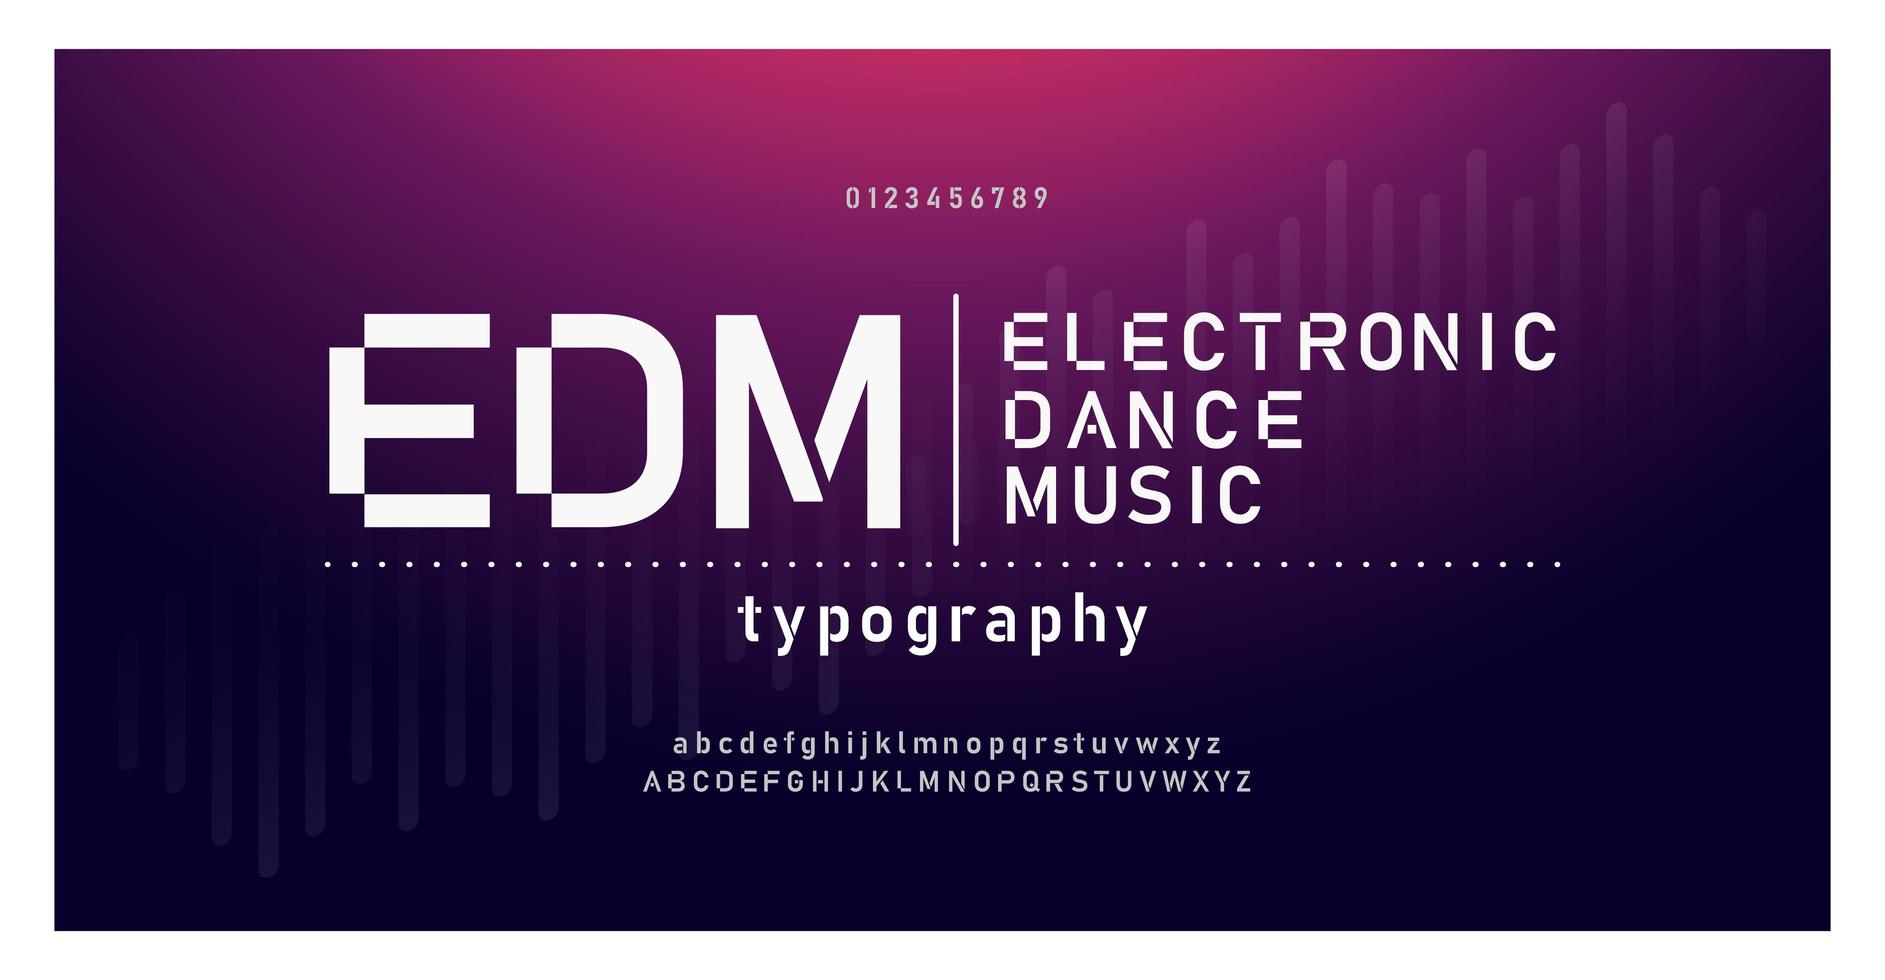 Electronic dance music future creative font vector